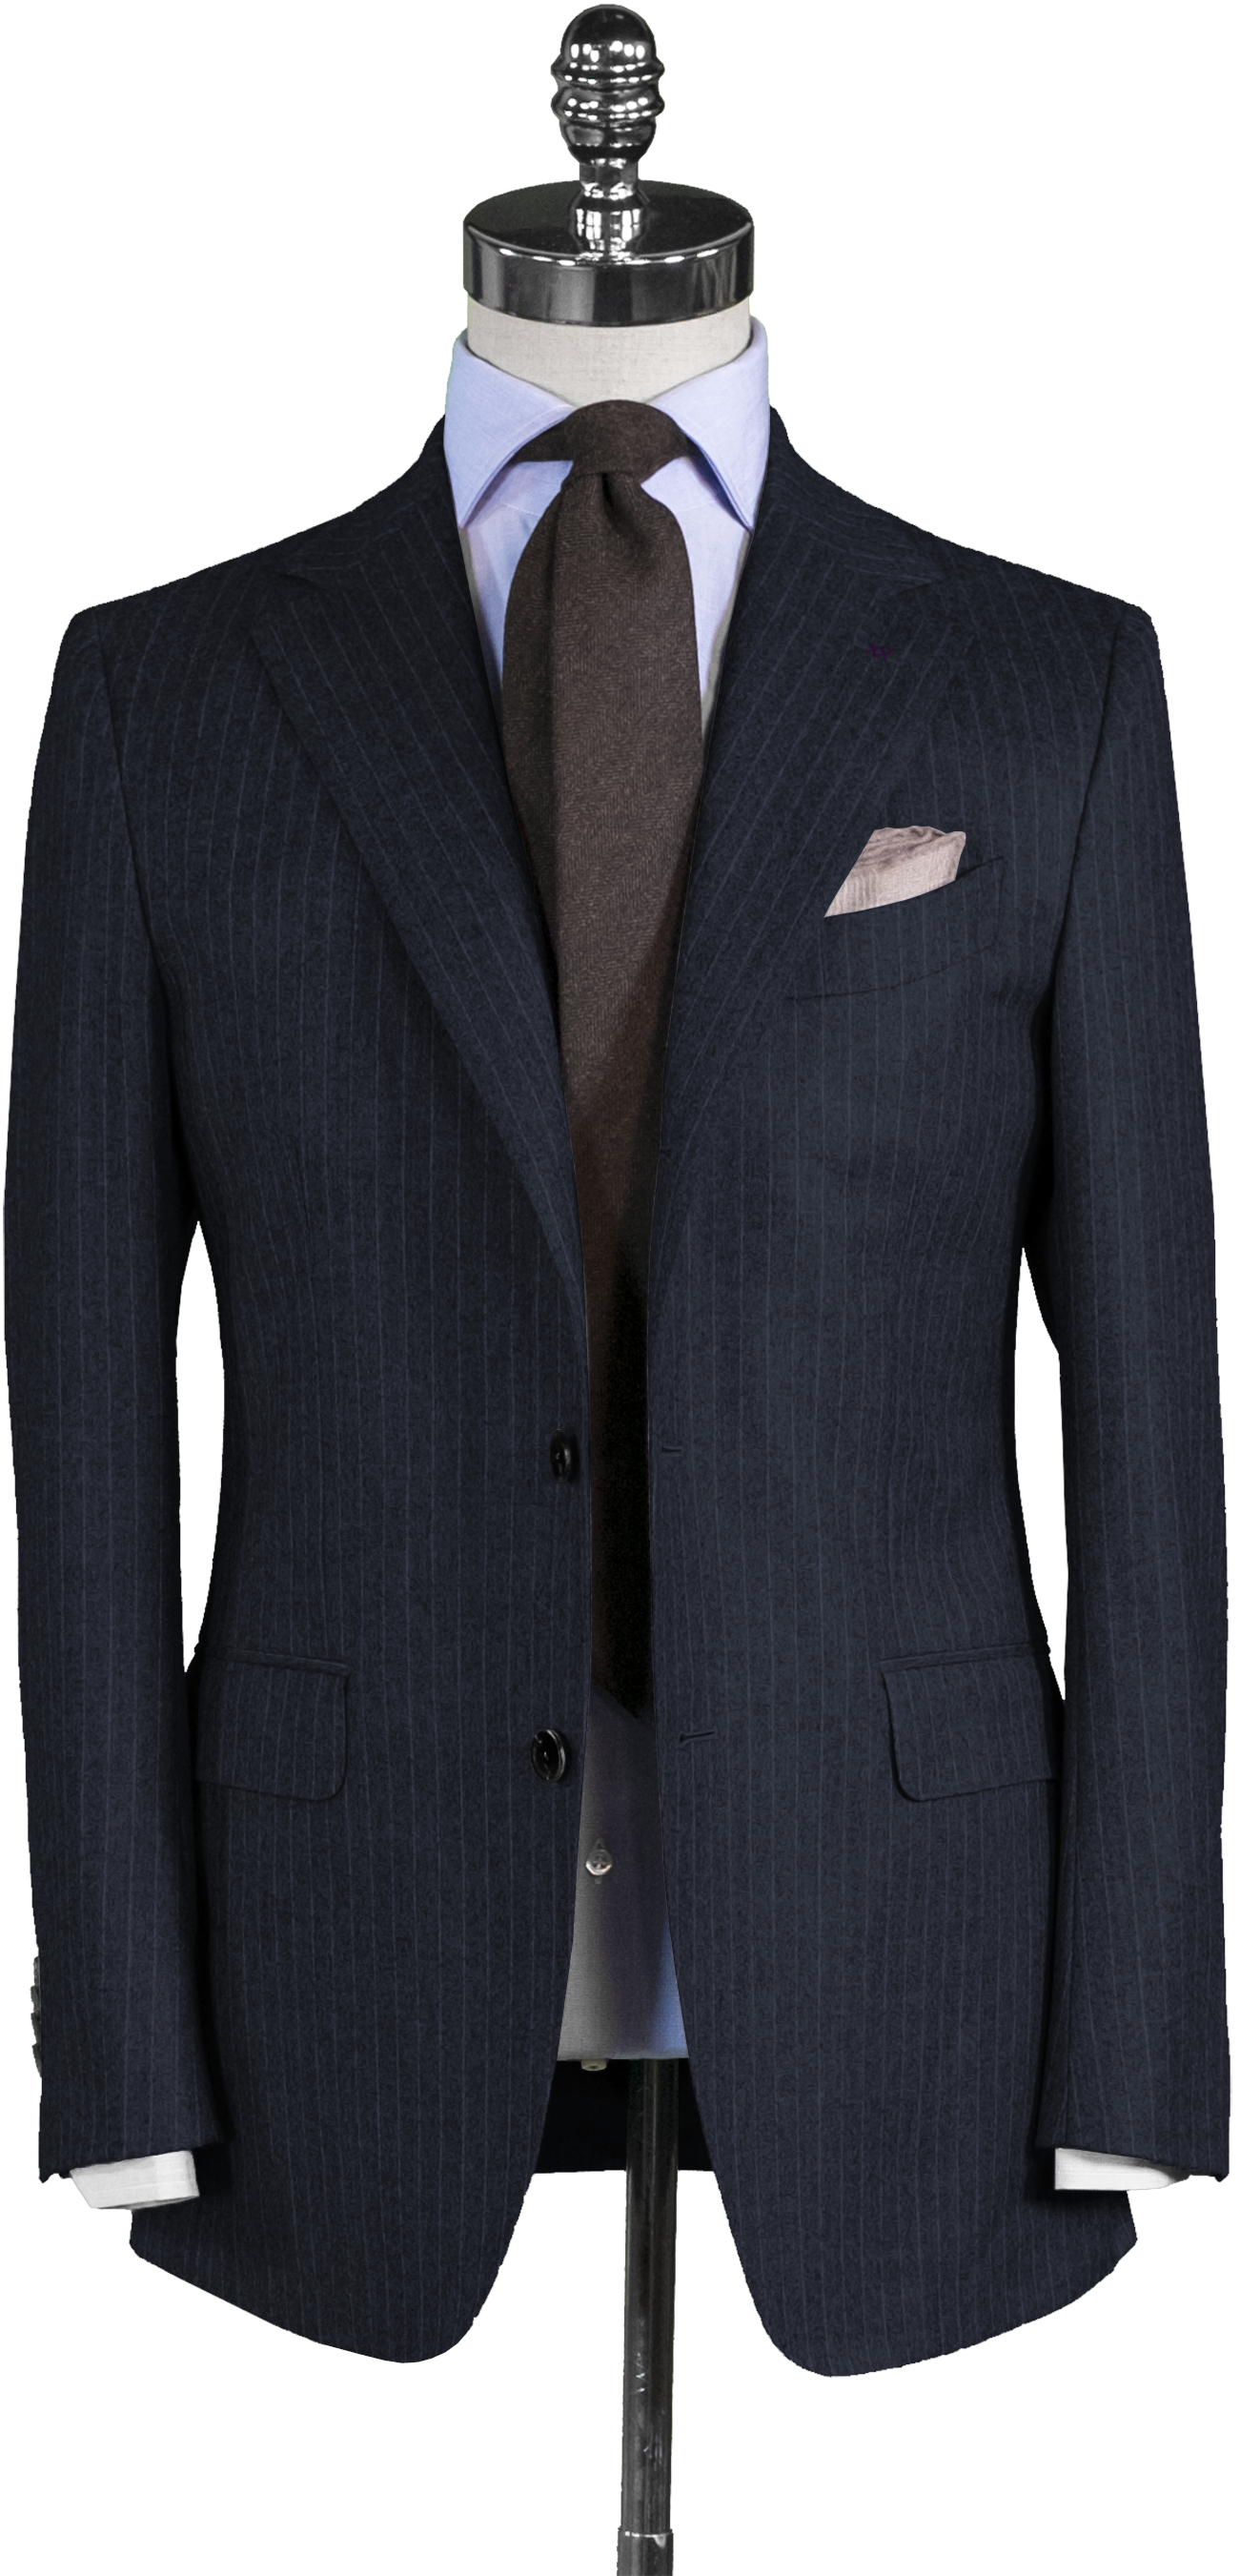 Navy Chalk Stripe Flannel Suit - Beckett   Robb 08ebc0ebc